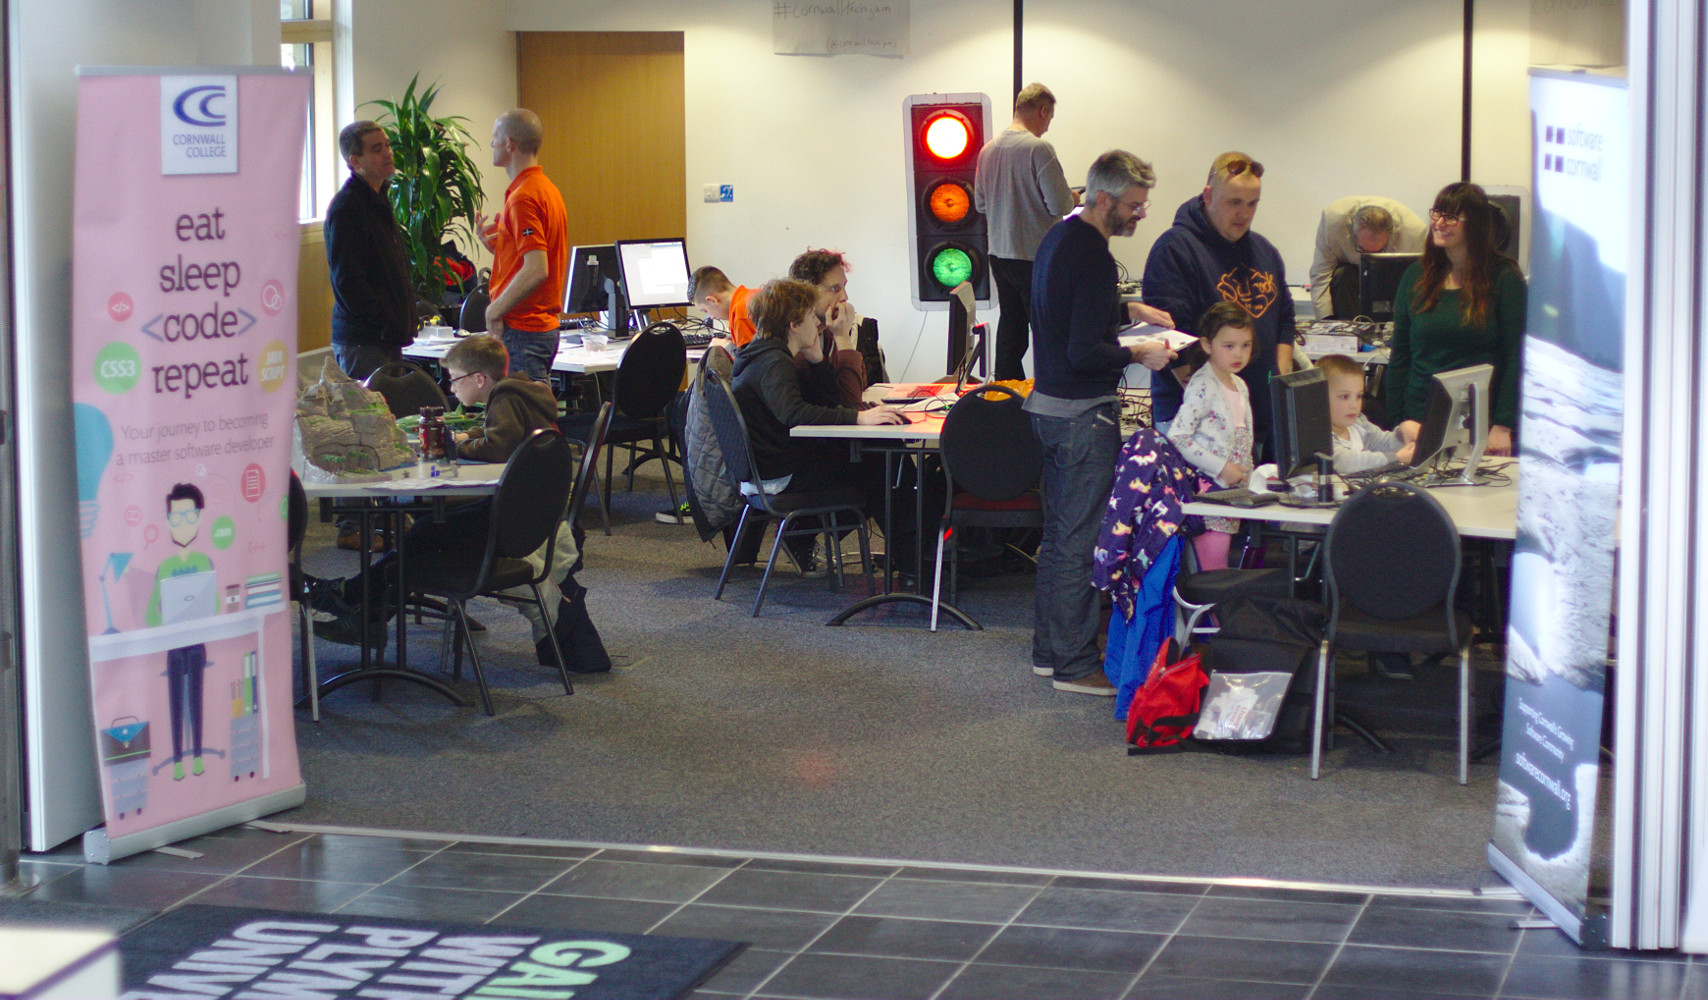 Photograph showing a hive of activity at April's Tech Jam